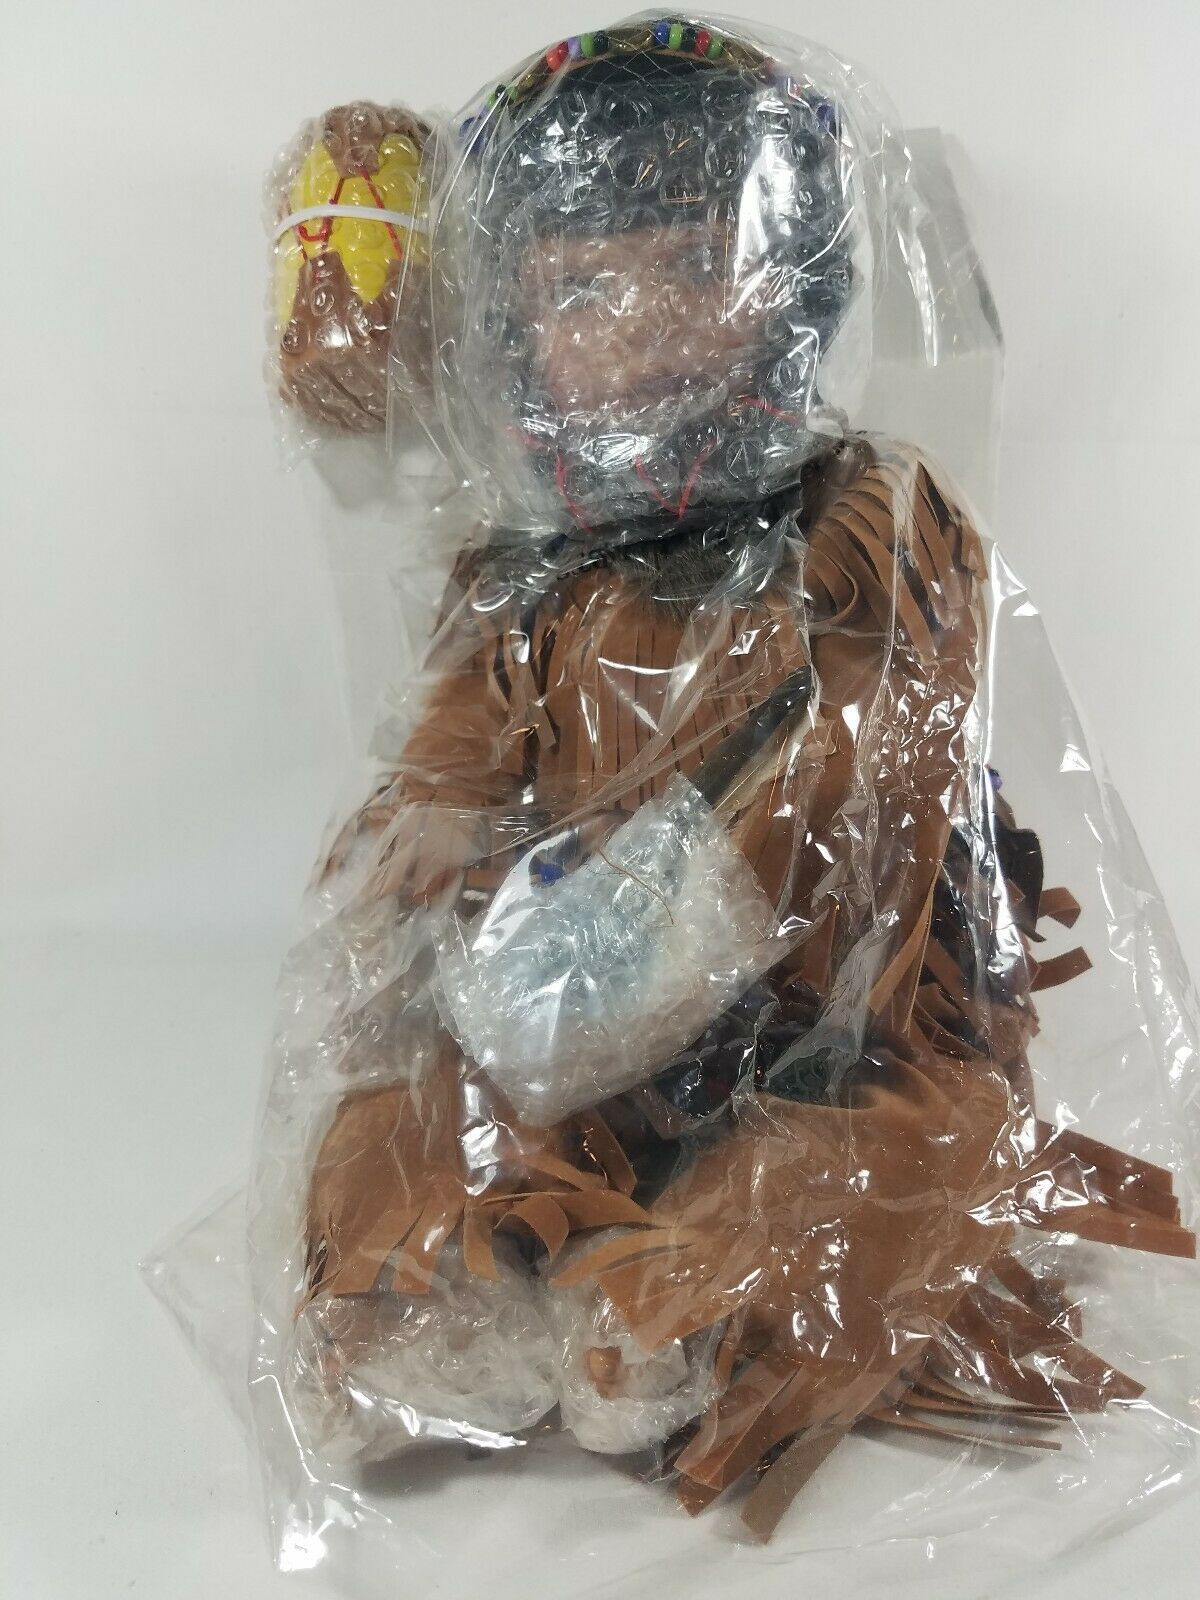 NEW IN BOX NATIVE AMERICAN PORCELAIN DOLL ABC   25188 NPD